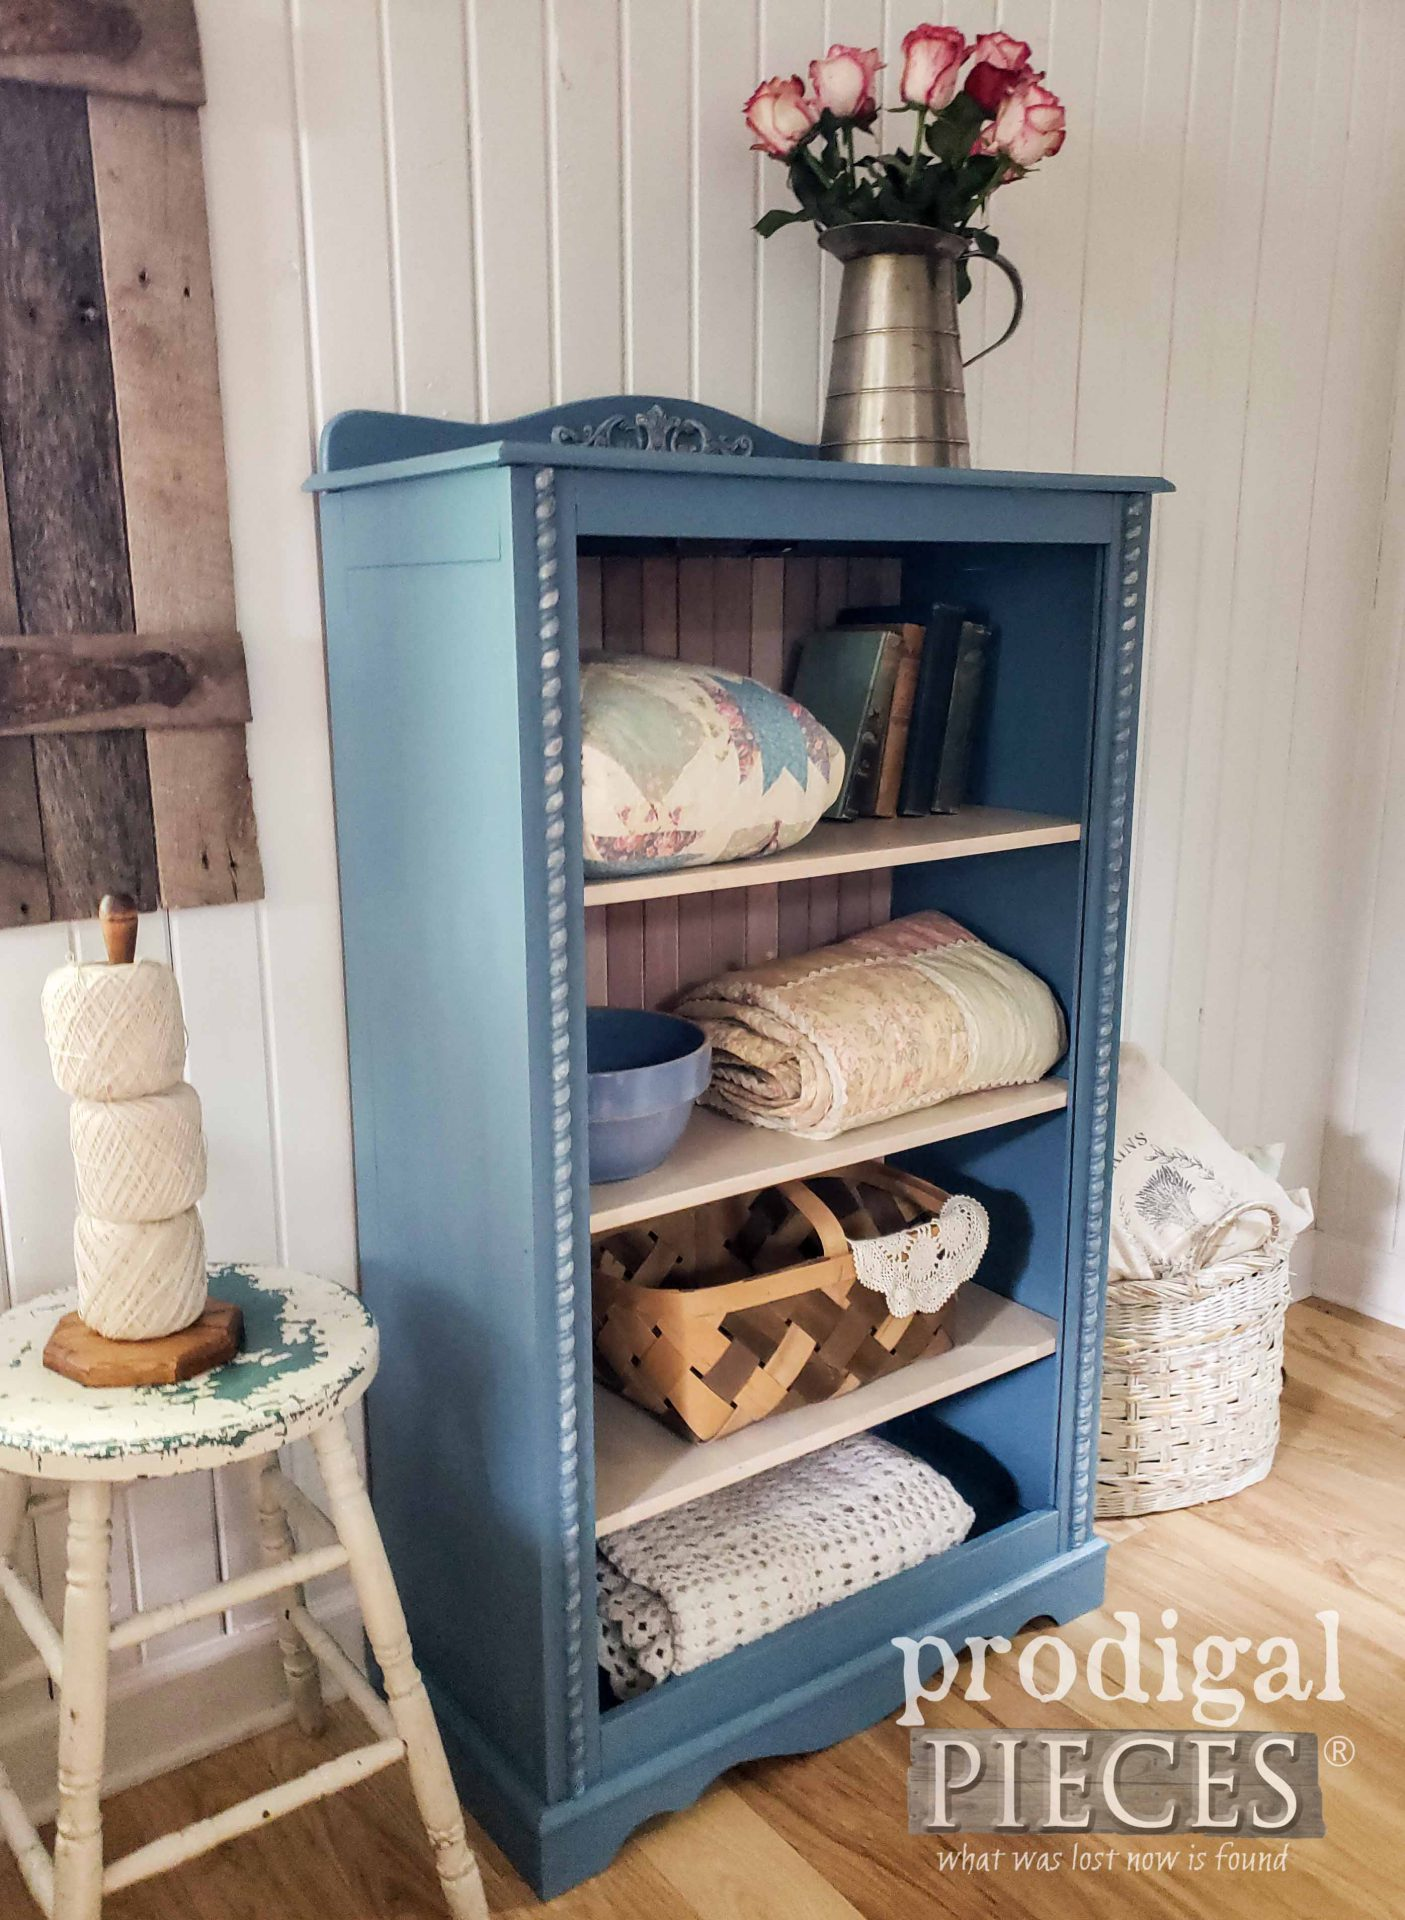 Cottage Style Cabinet for Linens, Books, and More by Larissa of Prodigal Pieces | prodigalpieces.com #prodigalpieces #diy #home #furniture #homedecor #cottage